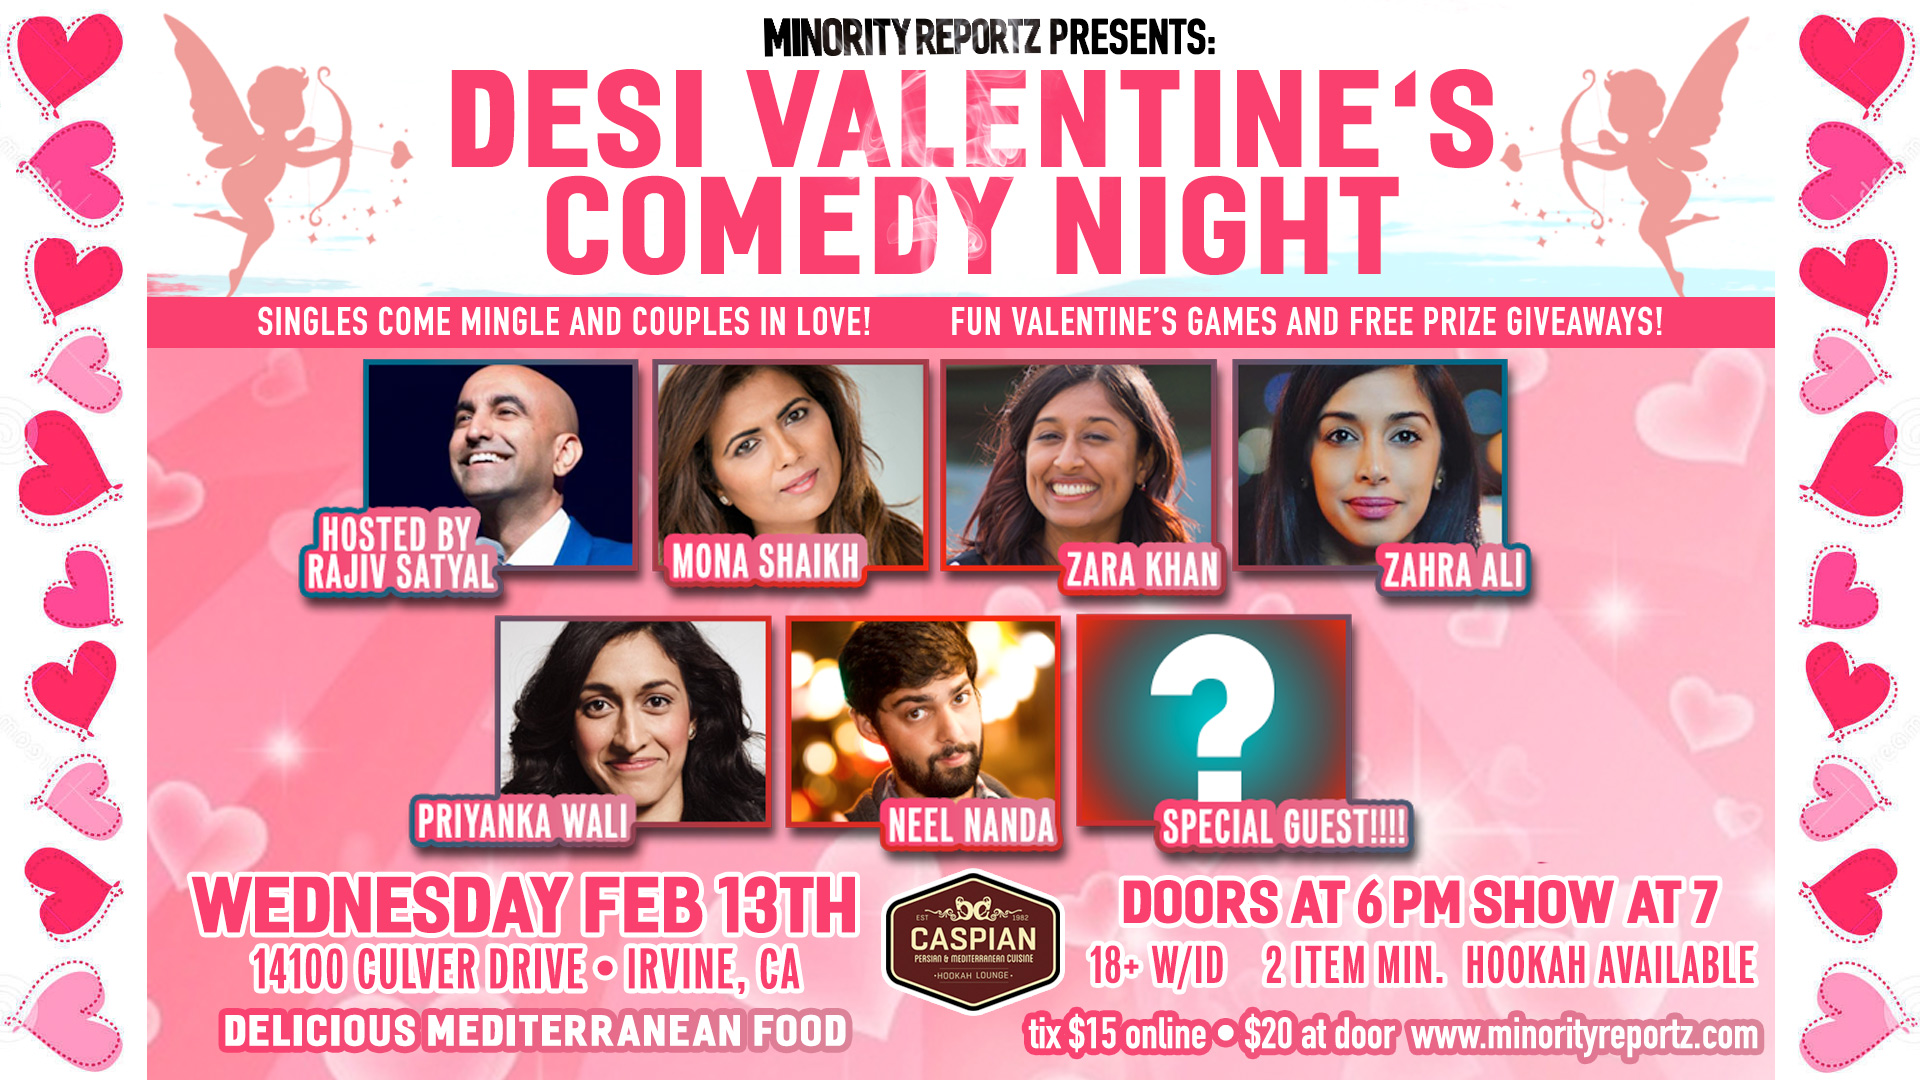 MINORITY REPORTZ PRESENTS DESI VALENTINE'S COMEDY NIGHT WITH RAJIV SATYAL (I AM INDIAN VIRAL VIDEO), MONA SHAIKH (MINORITY REPORTZ PRODUCER), PRIYANKA WALI (FLAPPERS COMEDY CLUB), NEEL NANDA (WESTSIDE COMEDY THEATER), ZAHRA ALI (COMEDY STORE) + MANY MORE